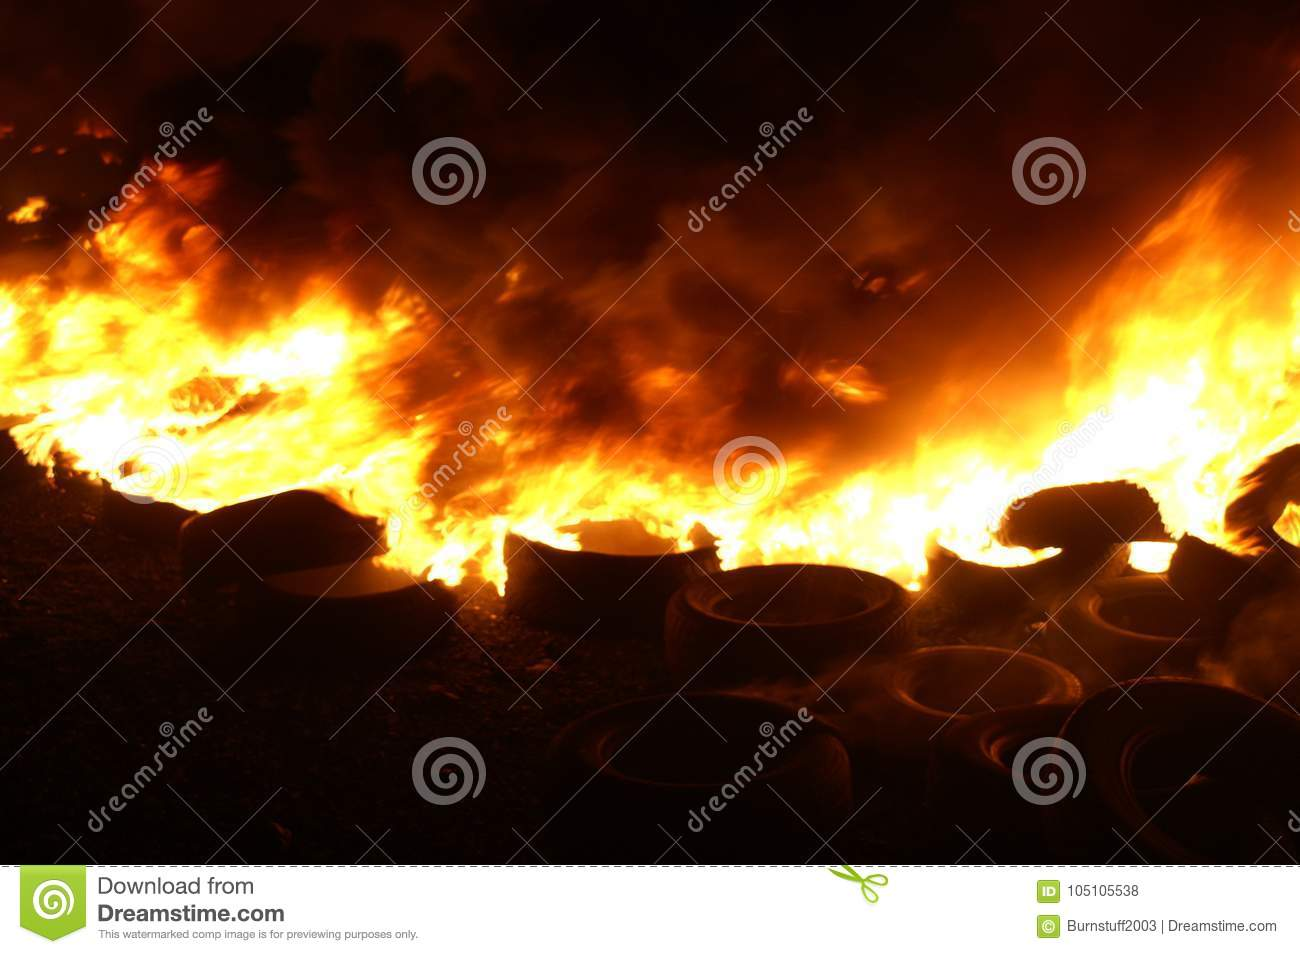 Gas explosion, fire and destruction, large incident,